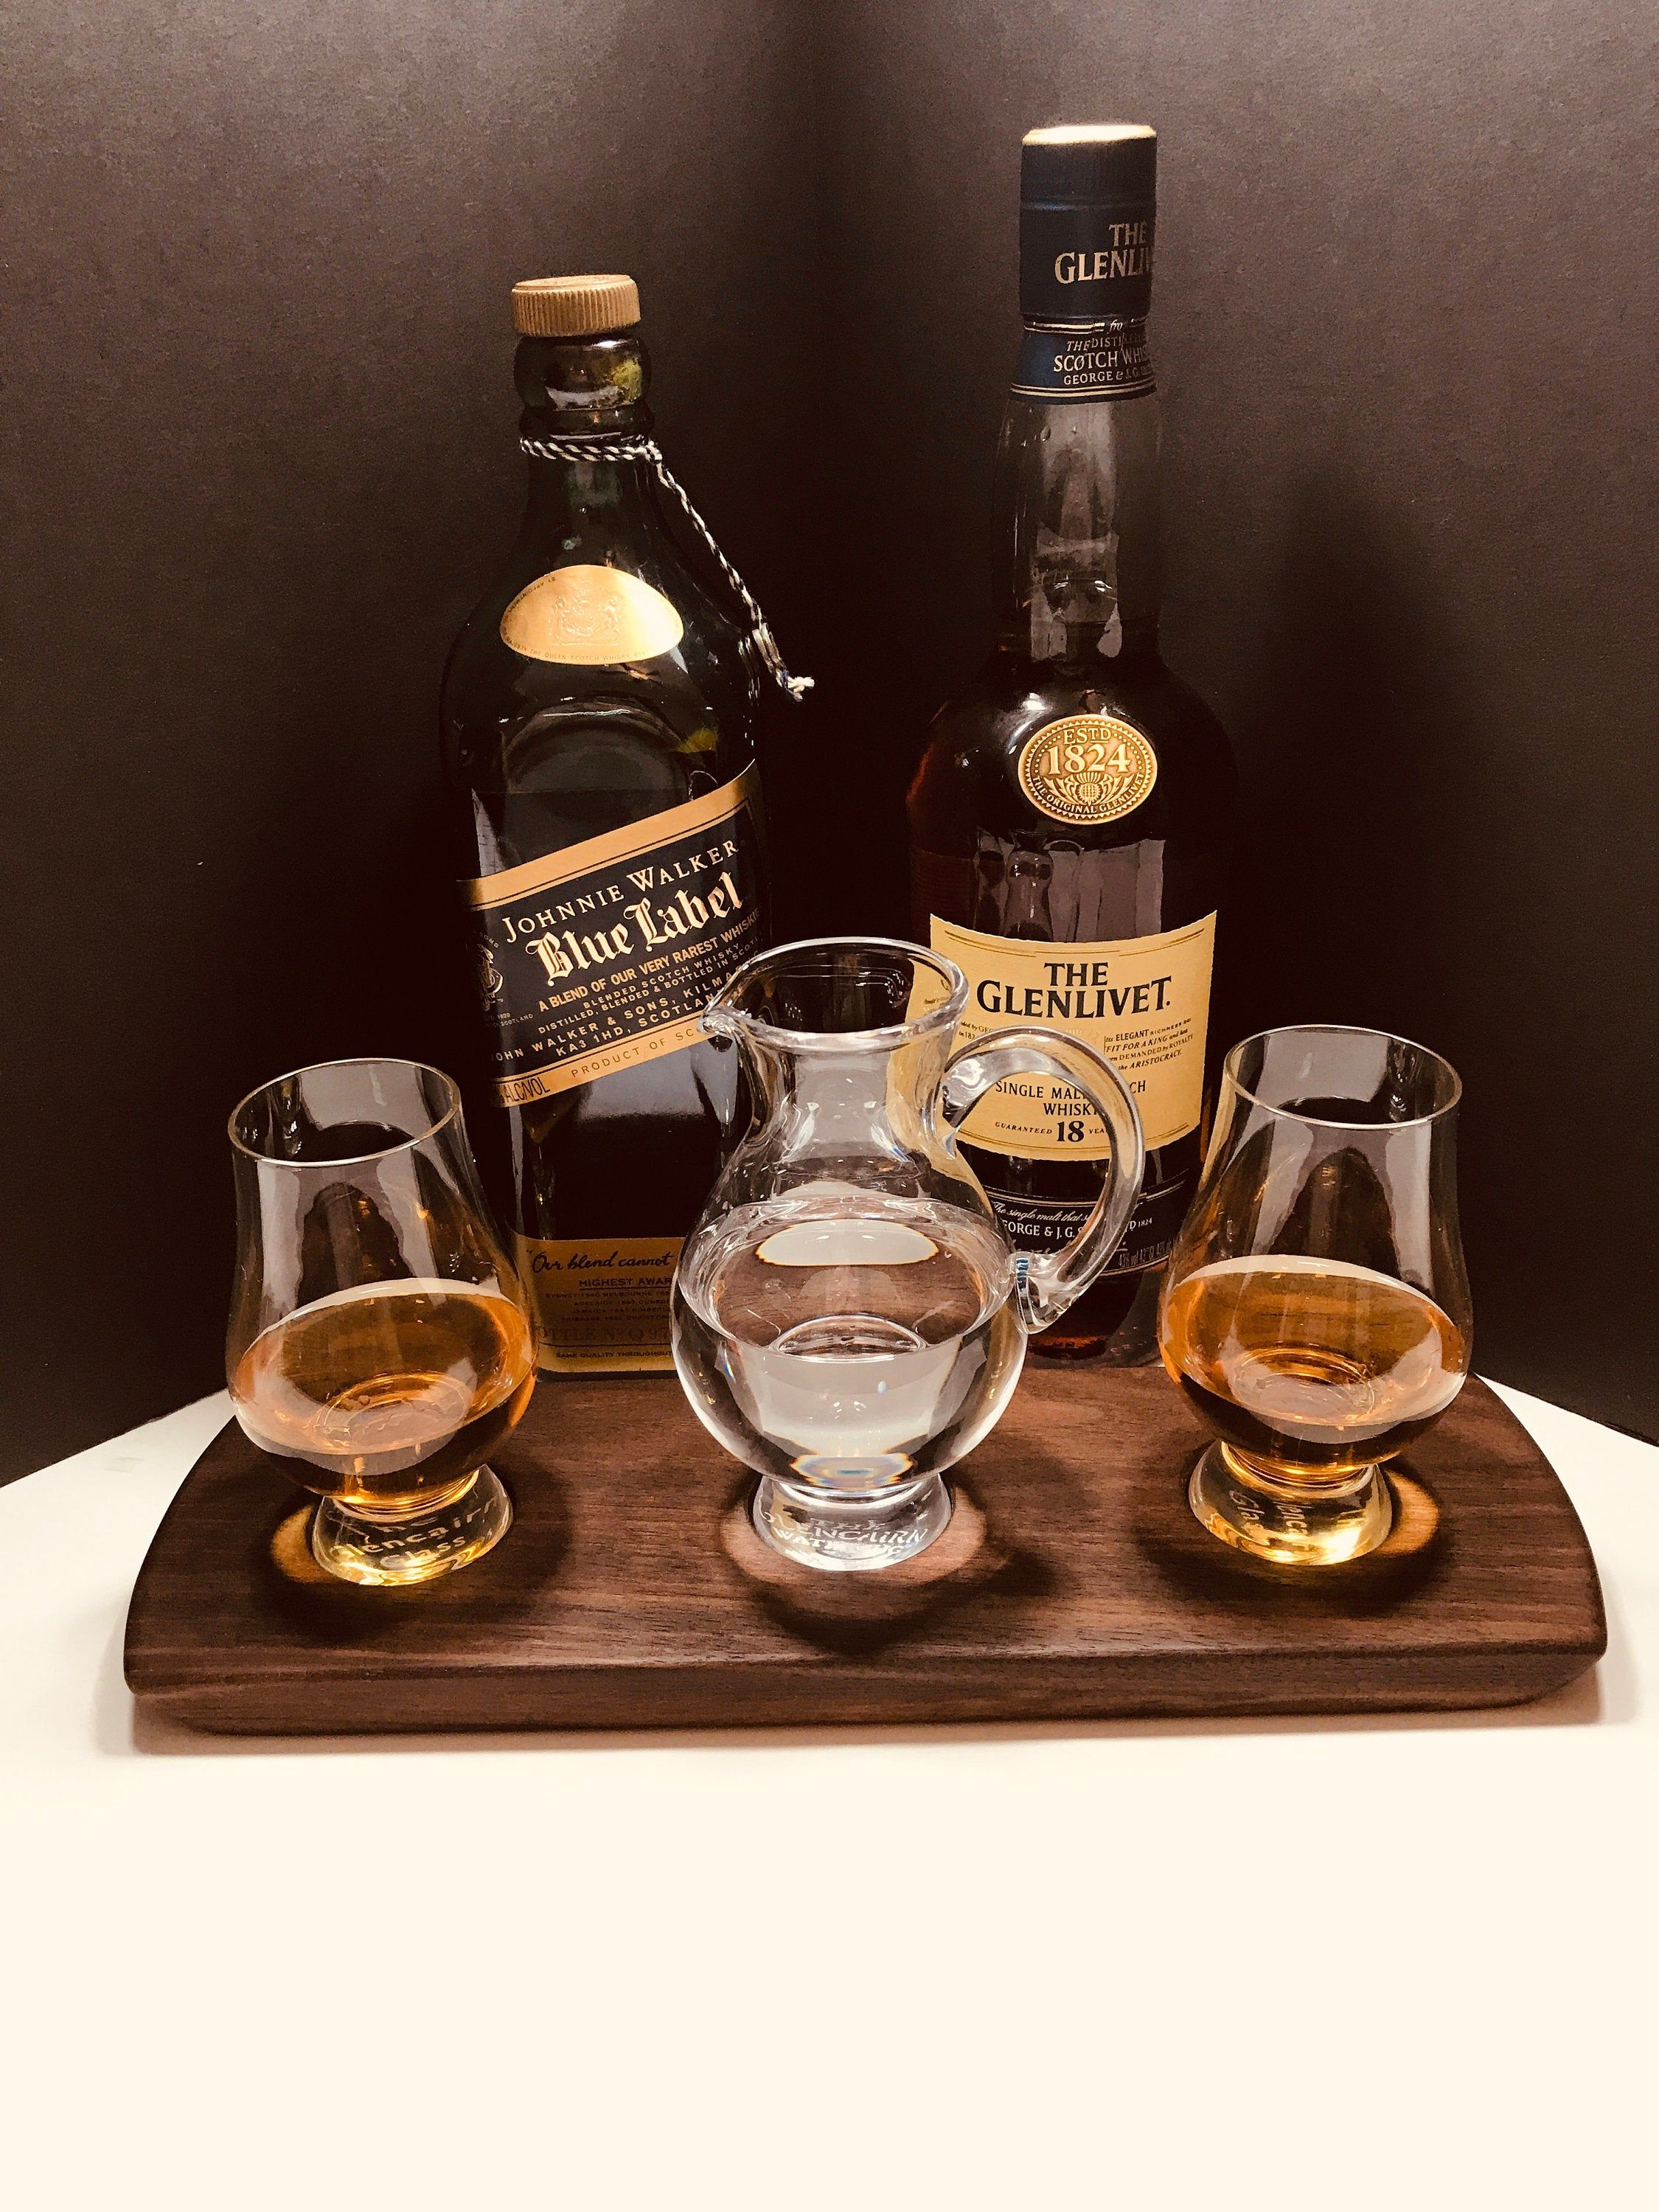 Whisky Whiskey Bourbon Scotch Tasting Flight - Solid Walnut Serving Tray 2 Glencairn Glasses & Water Pitcher Jug - Can Be Personalized